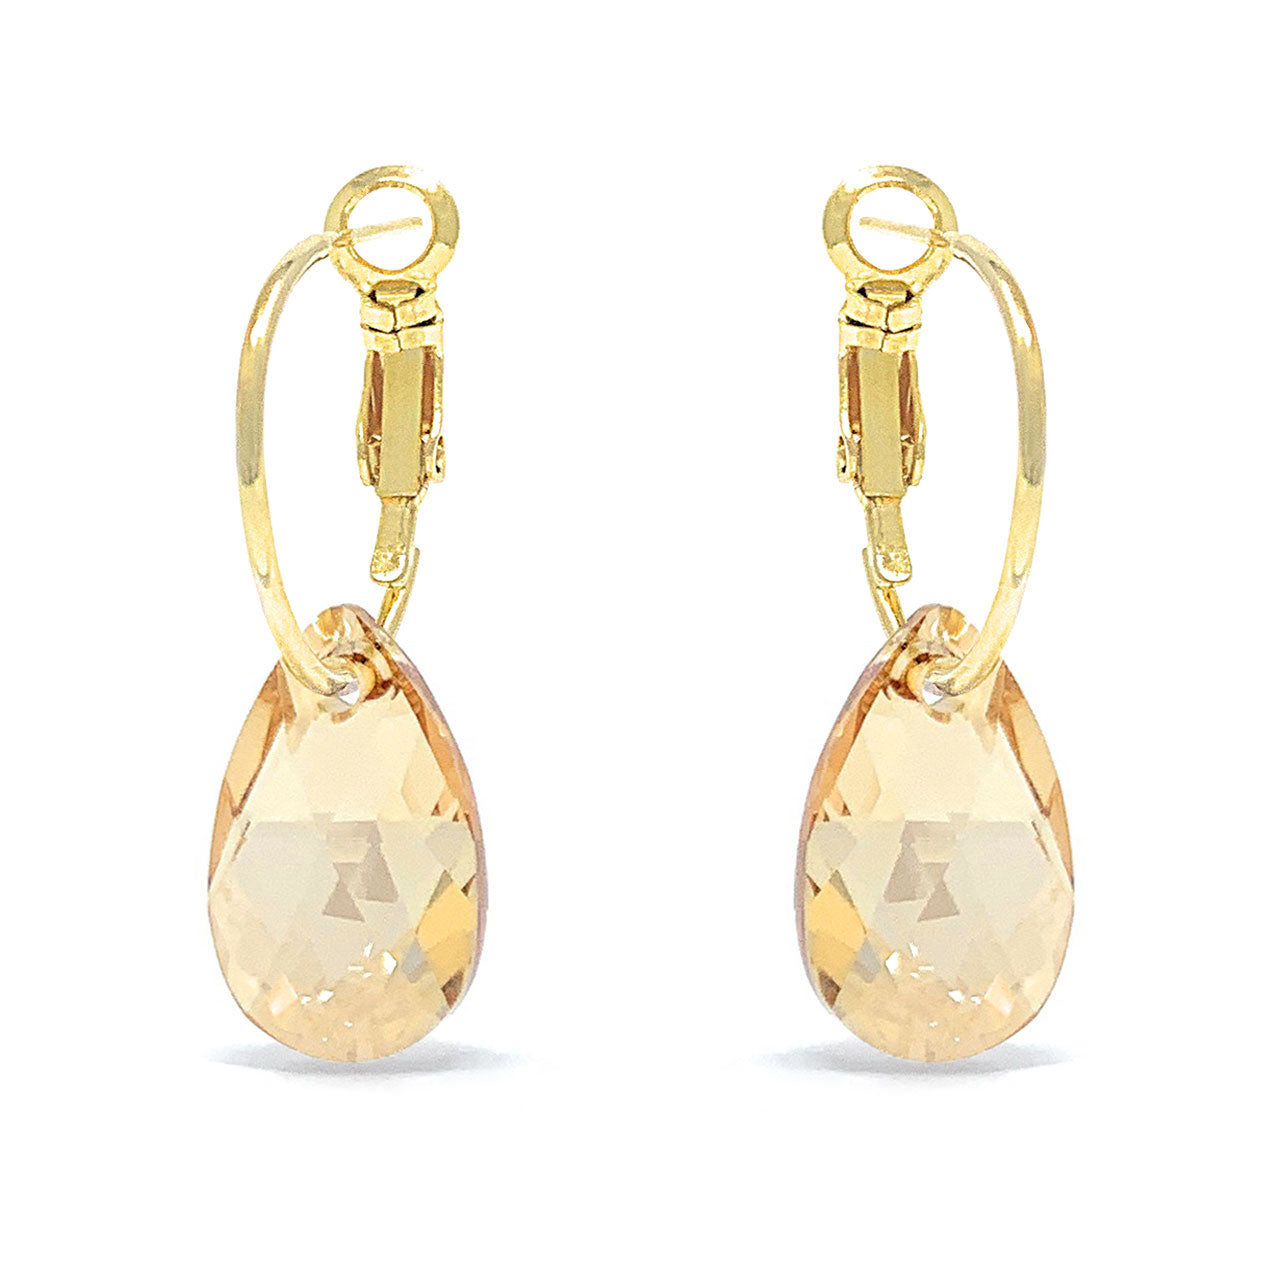 Aurora Small Drop Earrings with Yellow Beige Golden Shadow Pear Crystals from Swarovski Gold Plated - Ed Heart